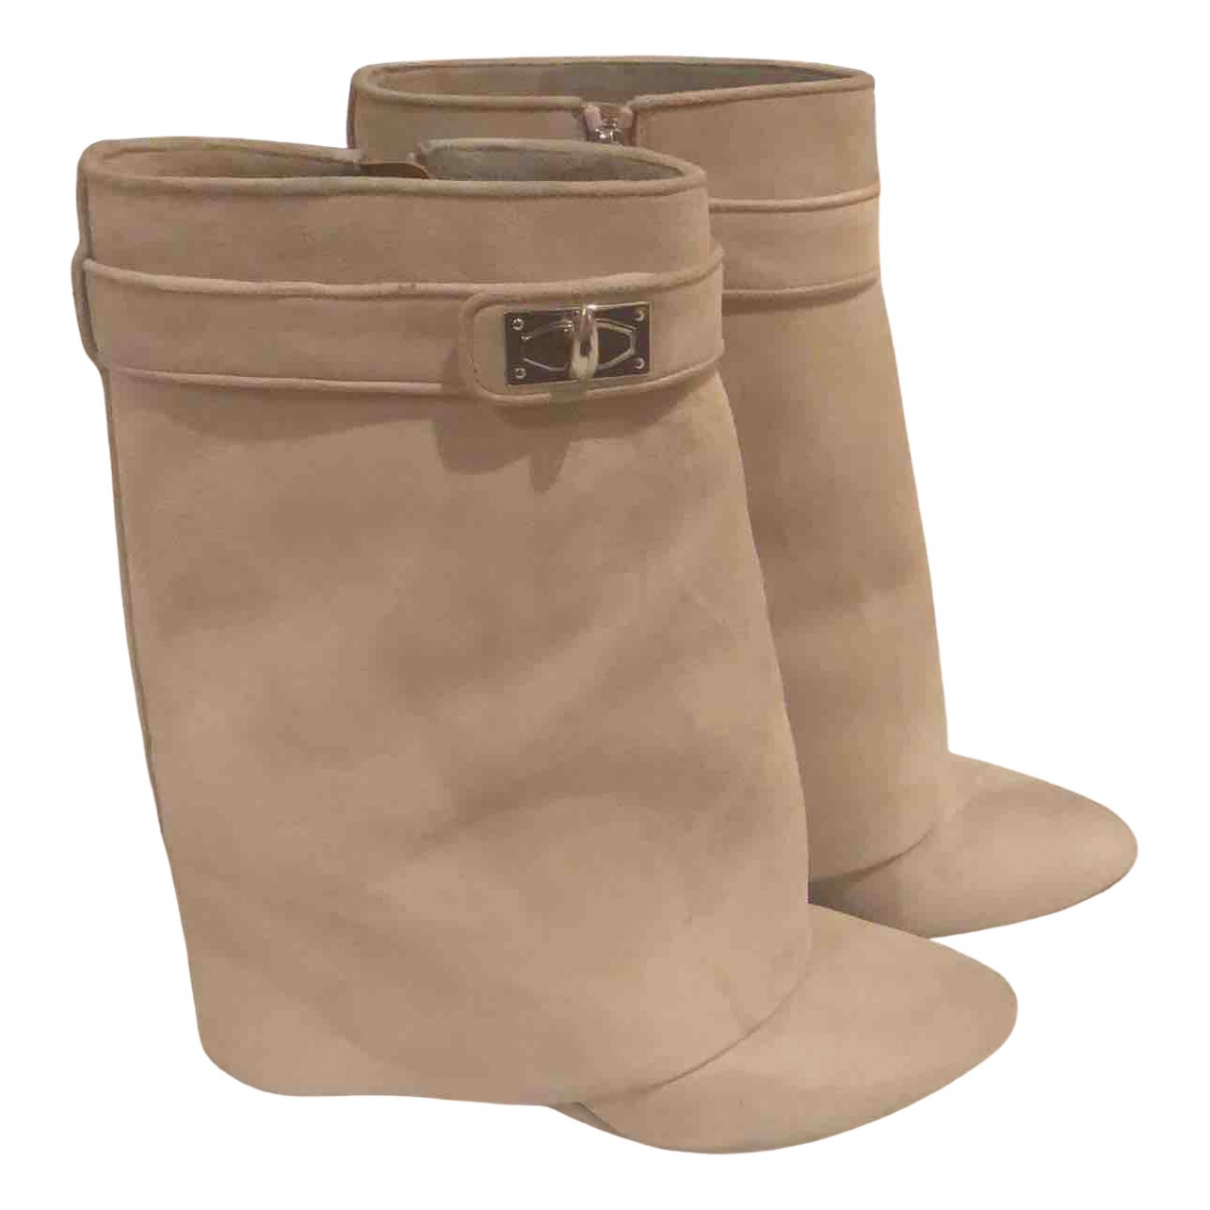 Givenchy Shark Beige Suede Boots for Women 40 EU